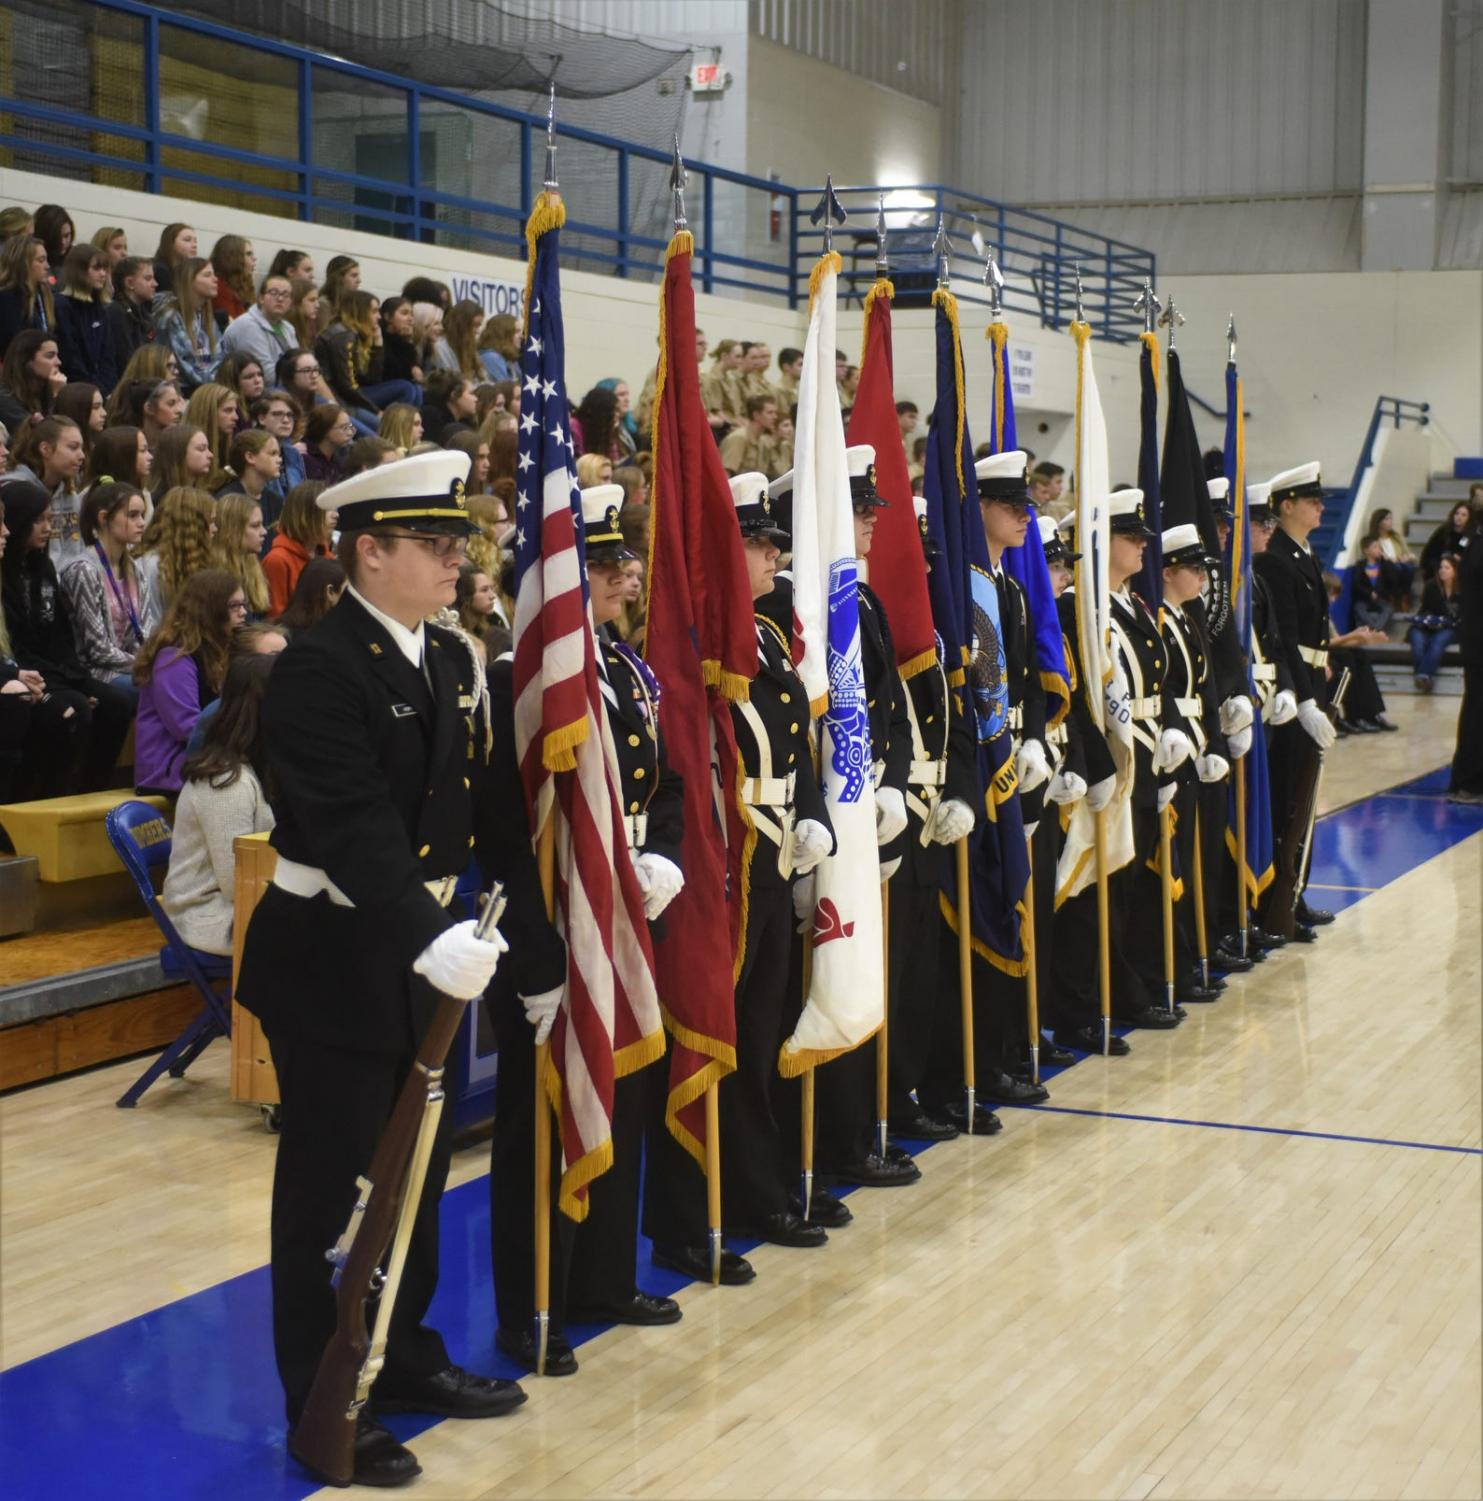 MHHS NJROTC cadets present flags during